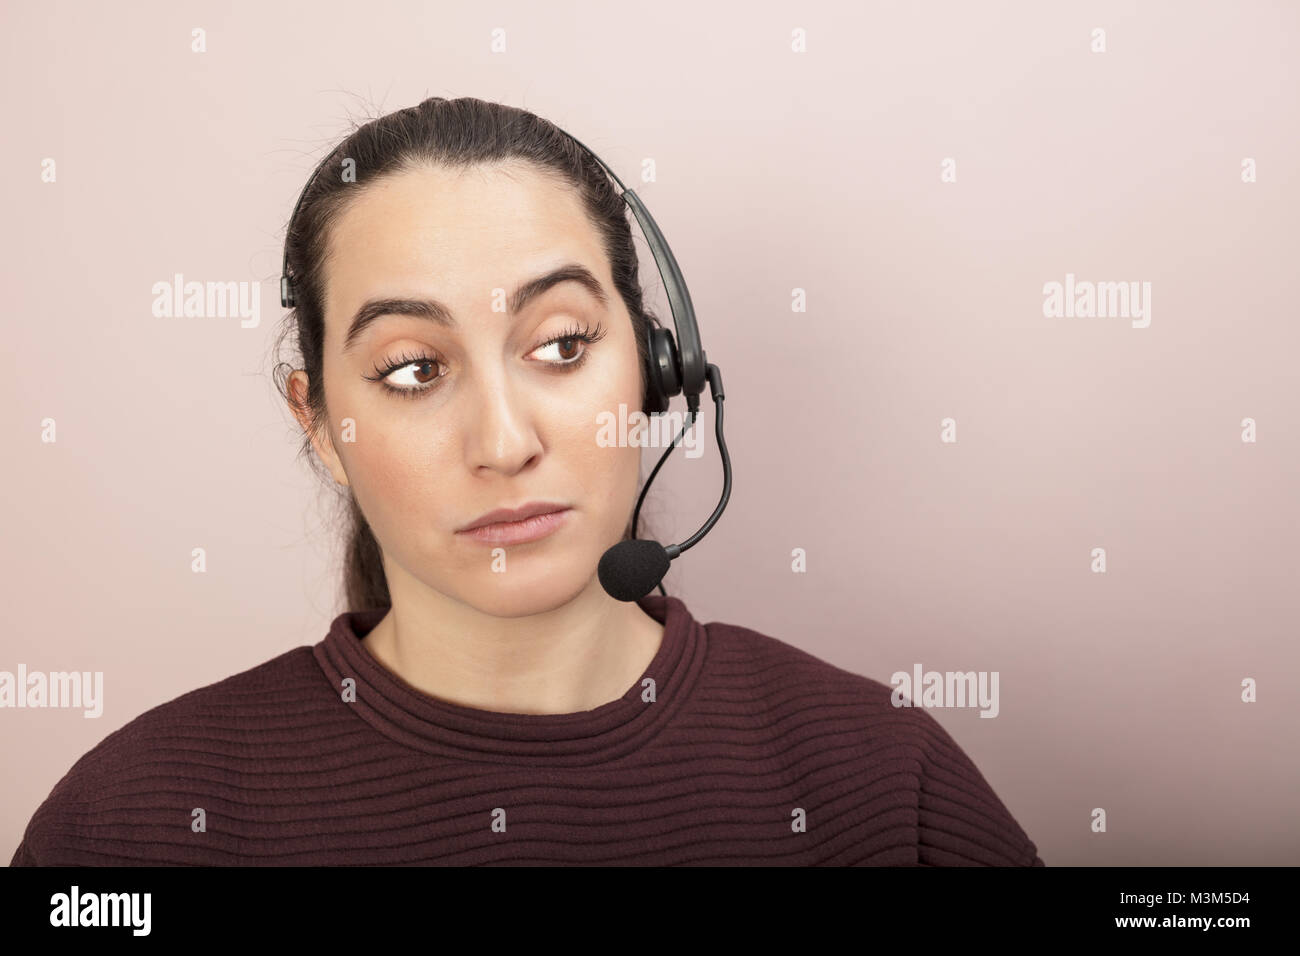 Sceptical help desk or call center operator listening to a call looking to the side with raised eyebrows and a dubious - Stock Image